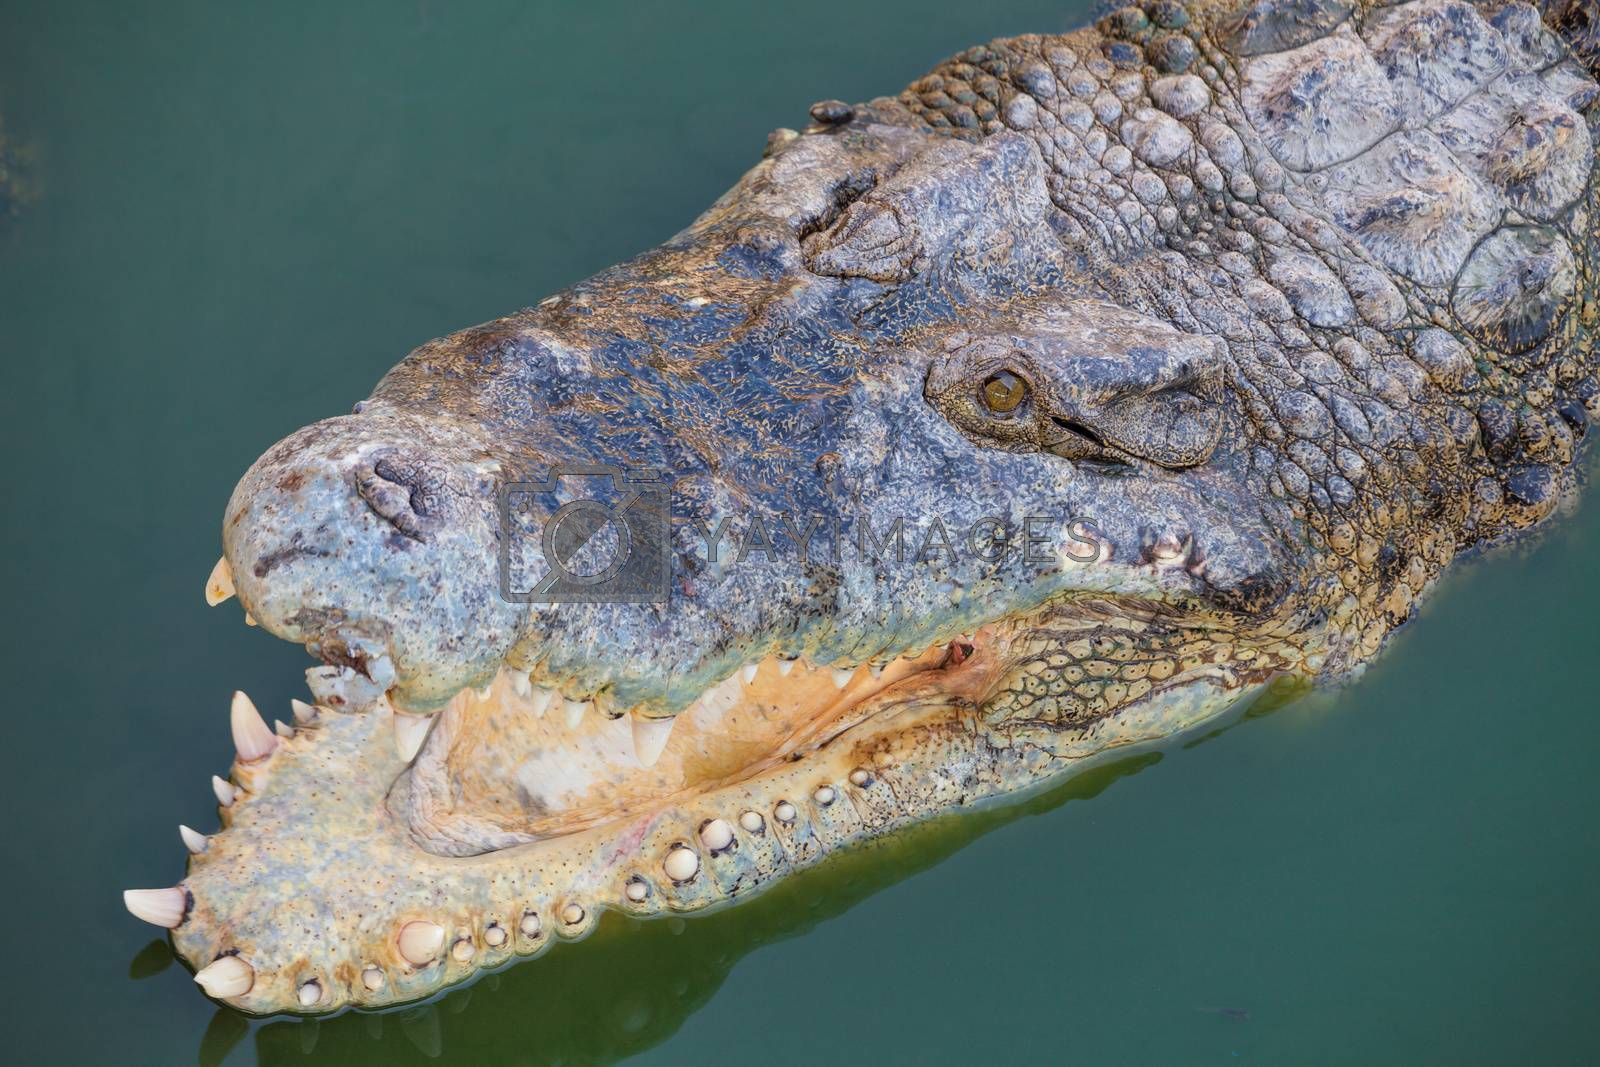 crocodile with open mouth resting in water